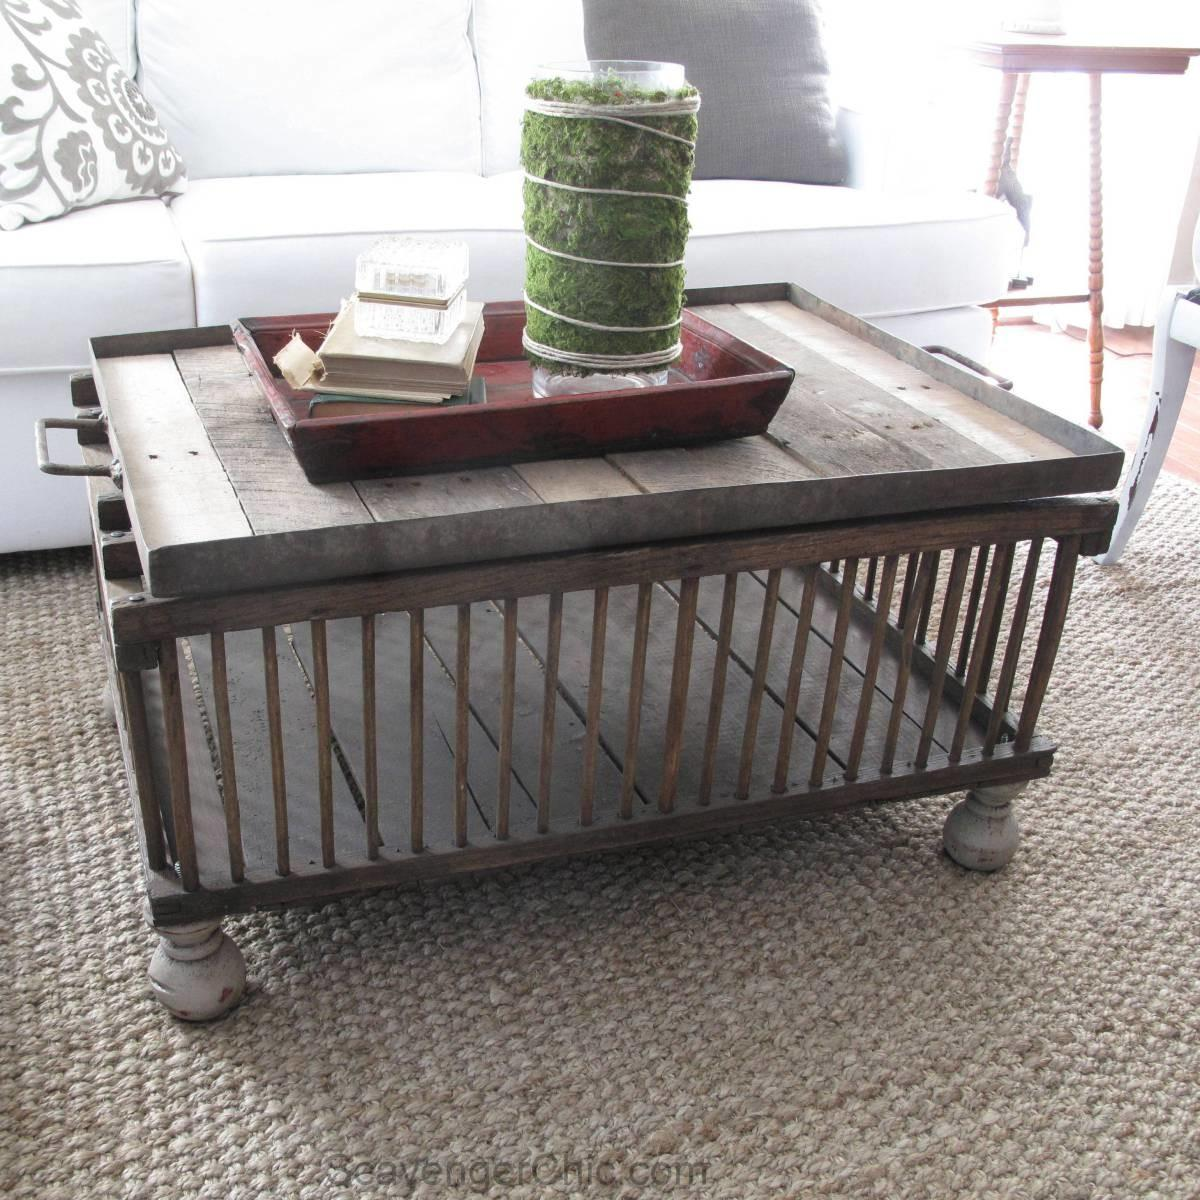 Chicken Coop Coffee Table Diy Scavenger Chic